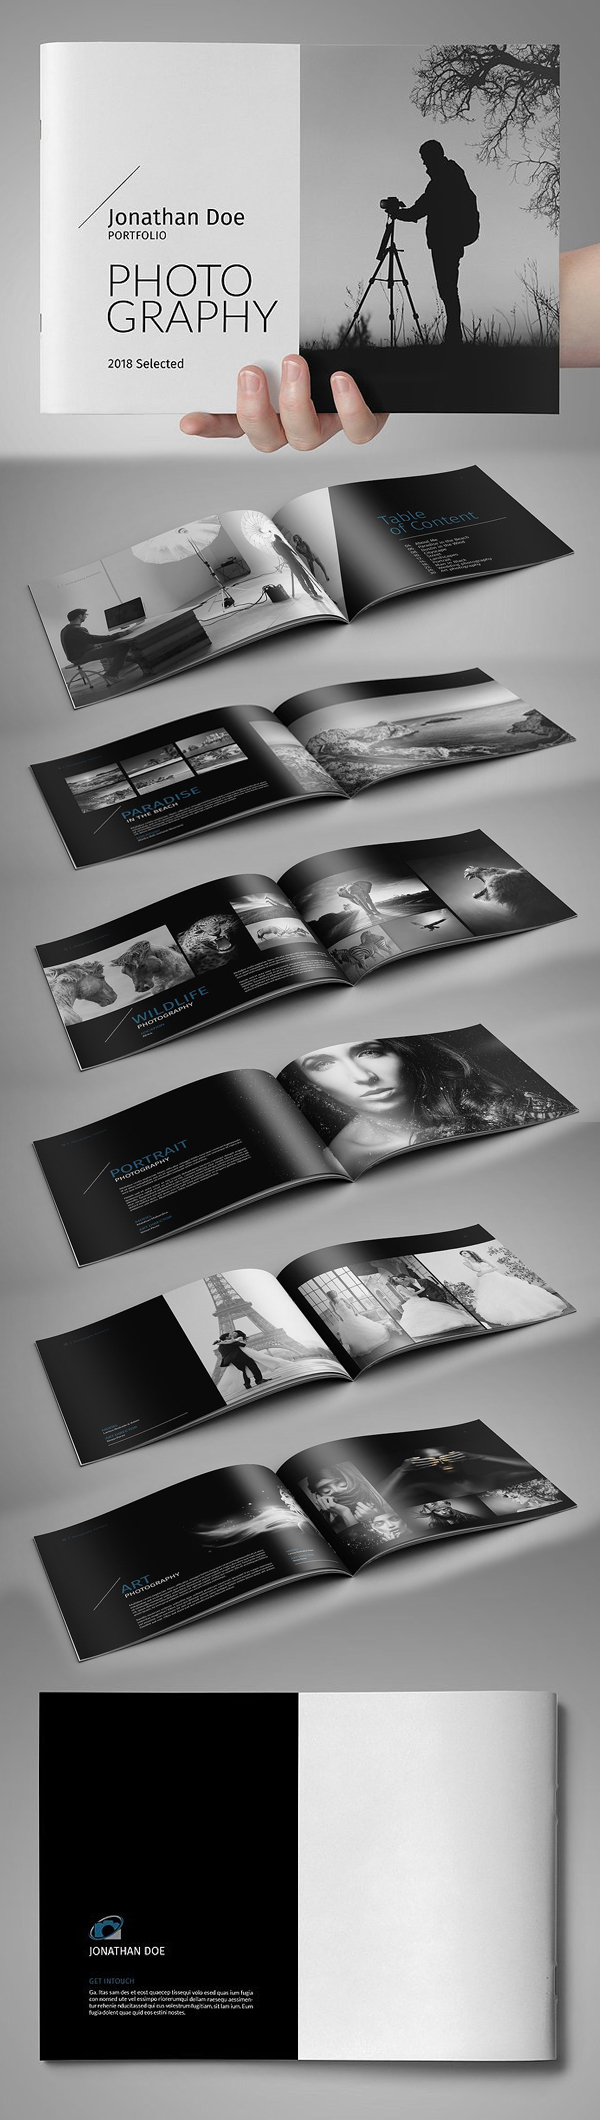 100 Professional Corporate Brochure Templates - 46